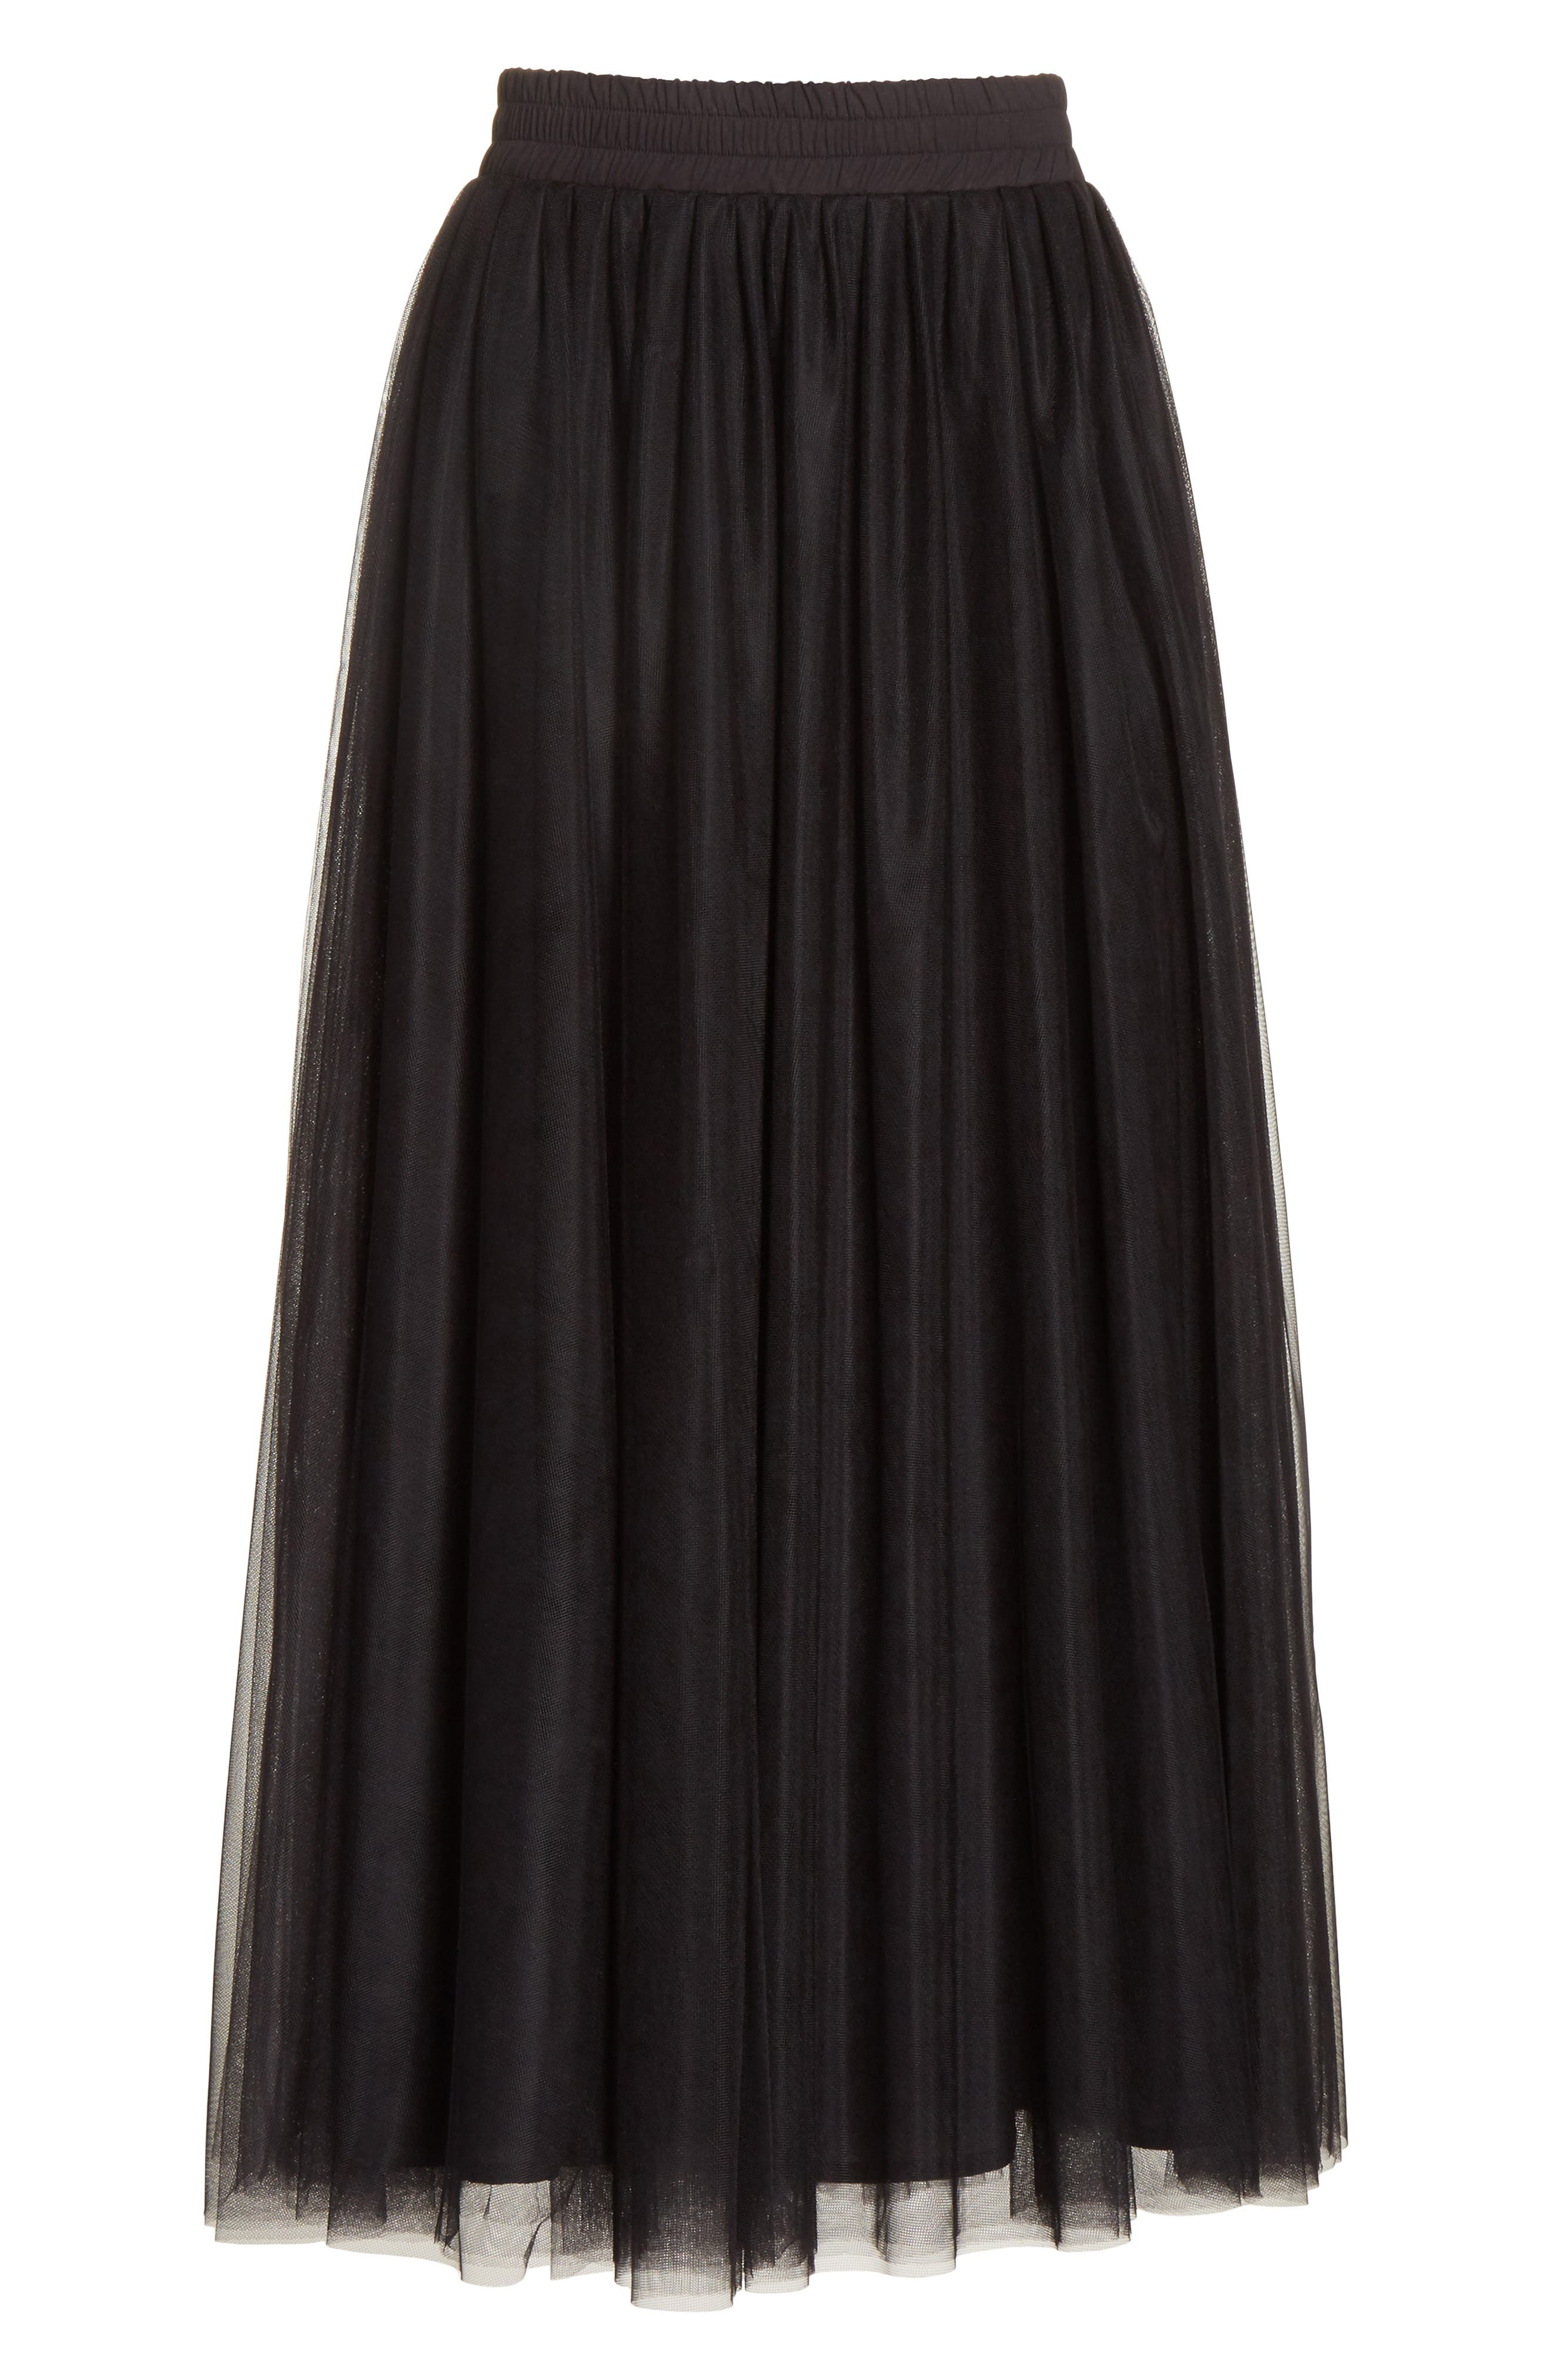 Tulle Midi Skirt,                             Alternate thumbnail 6, color,                             001